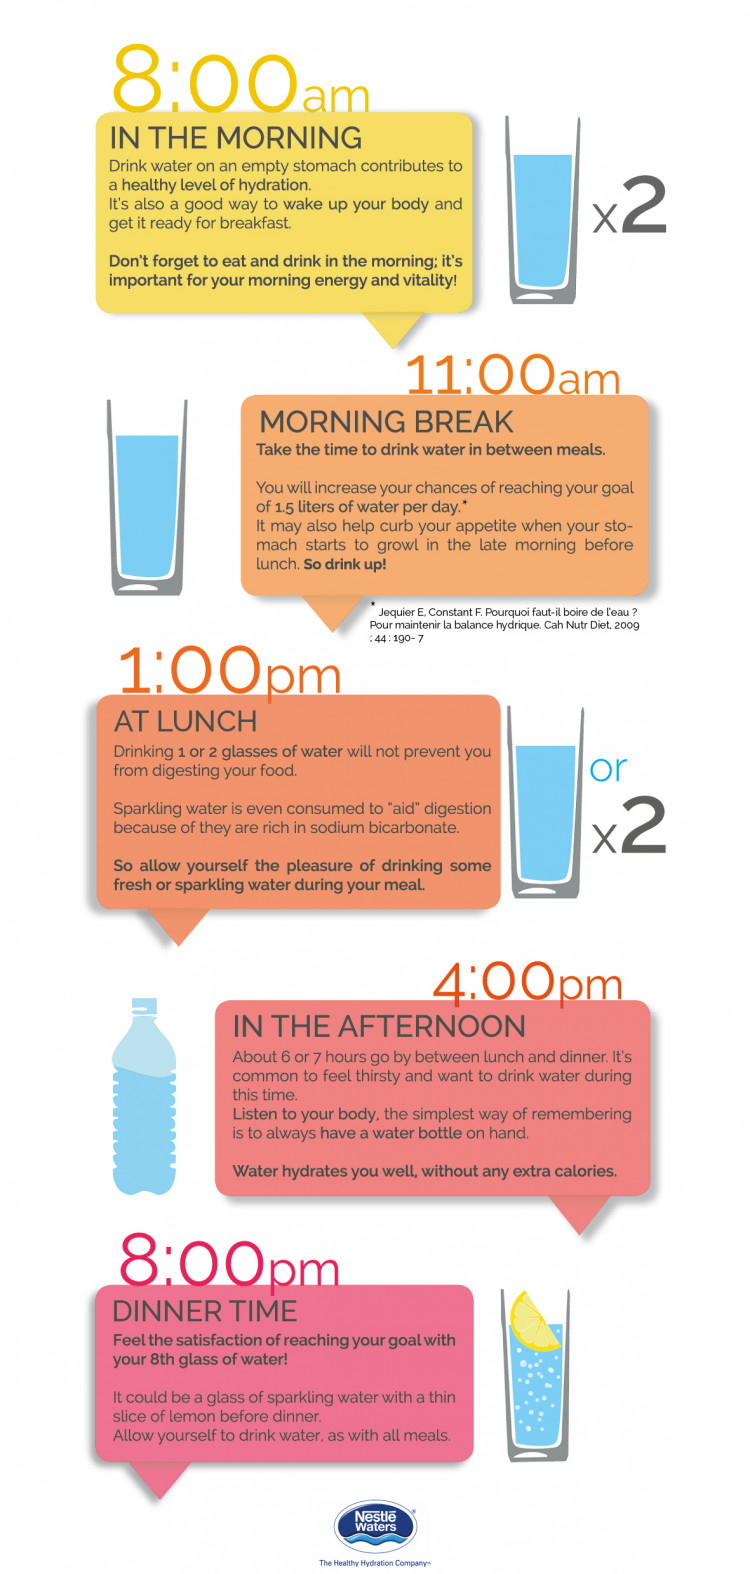 Staying Hydrated: What are the Best Times of Day to Drink Water?